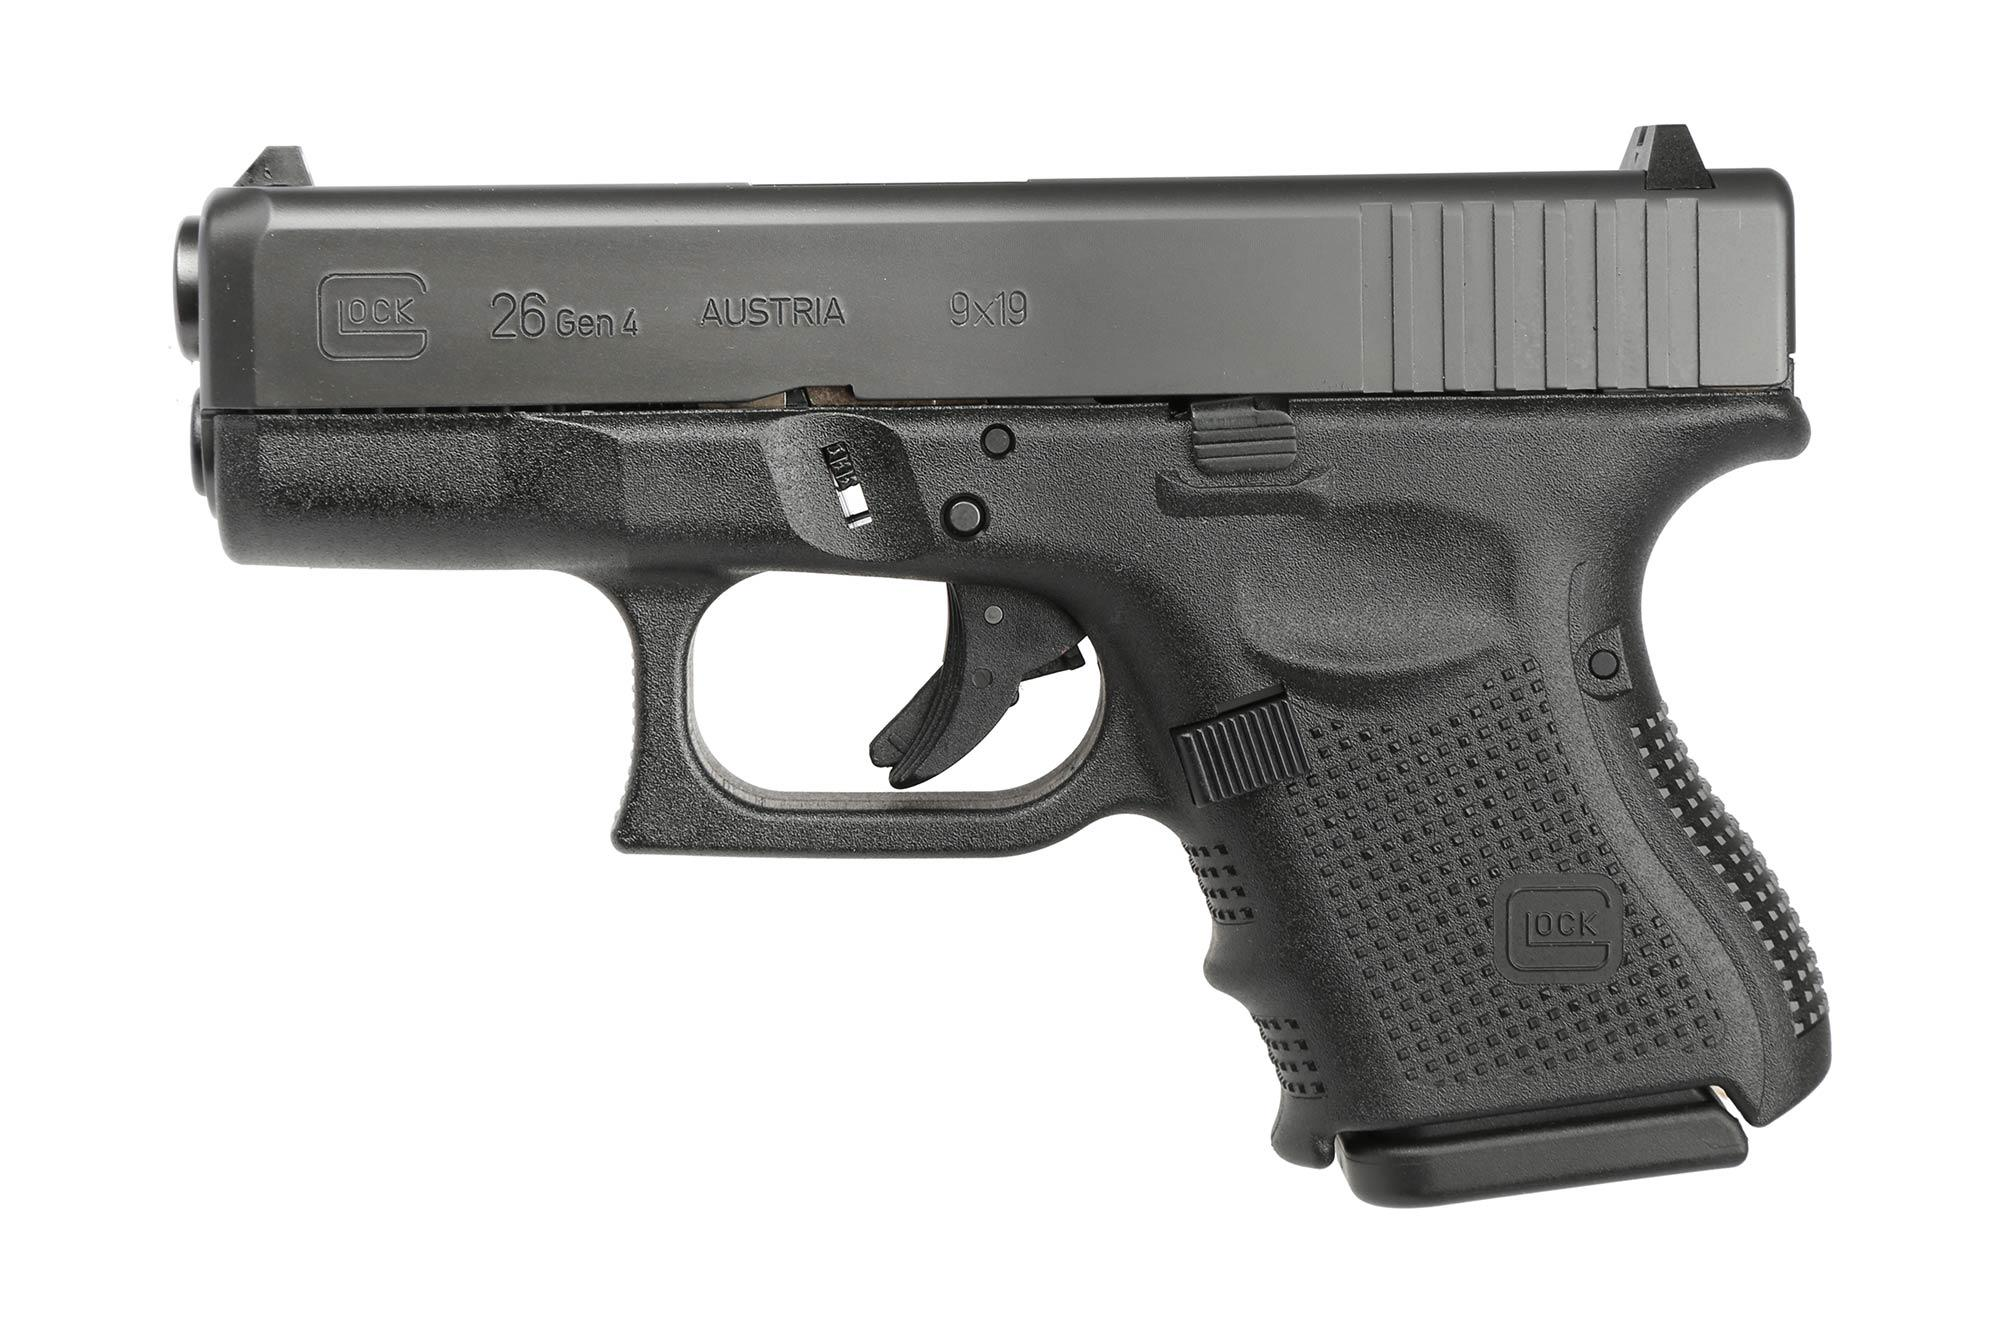 The Glock 26 Gen 4 9mm sub compact handgun features a 10 round capacity and polymer frame